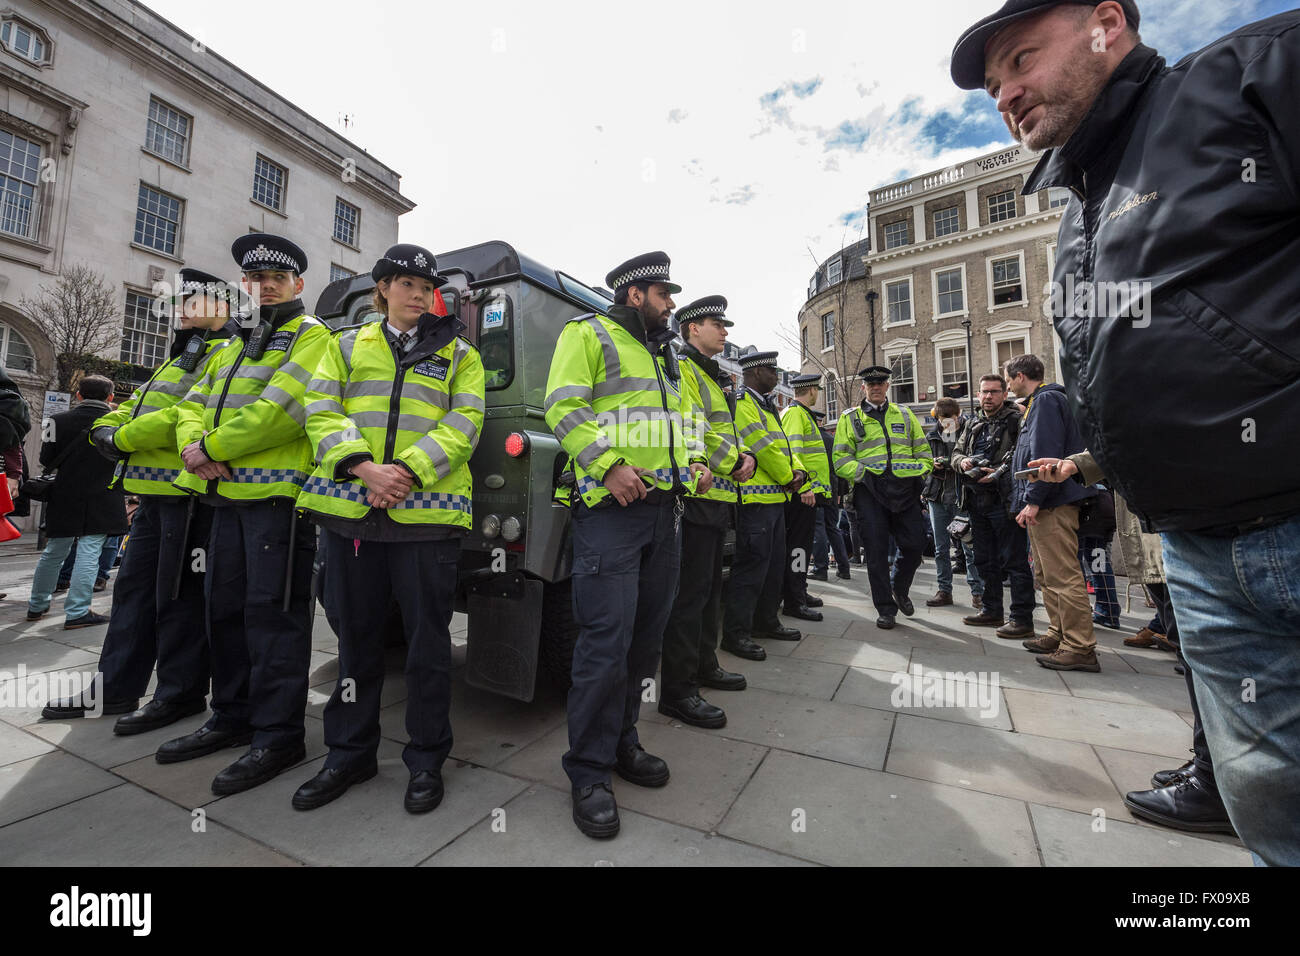 London, UK. 9th April 2016. 'David Cameron Must Resign' demonstration outside the Connaught Rooms location of the - Stock Image